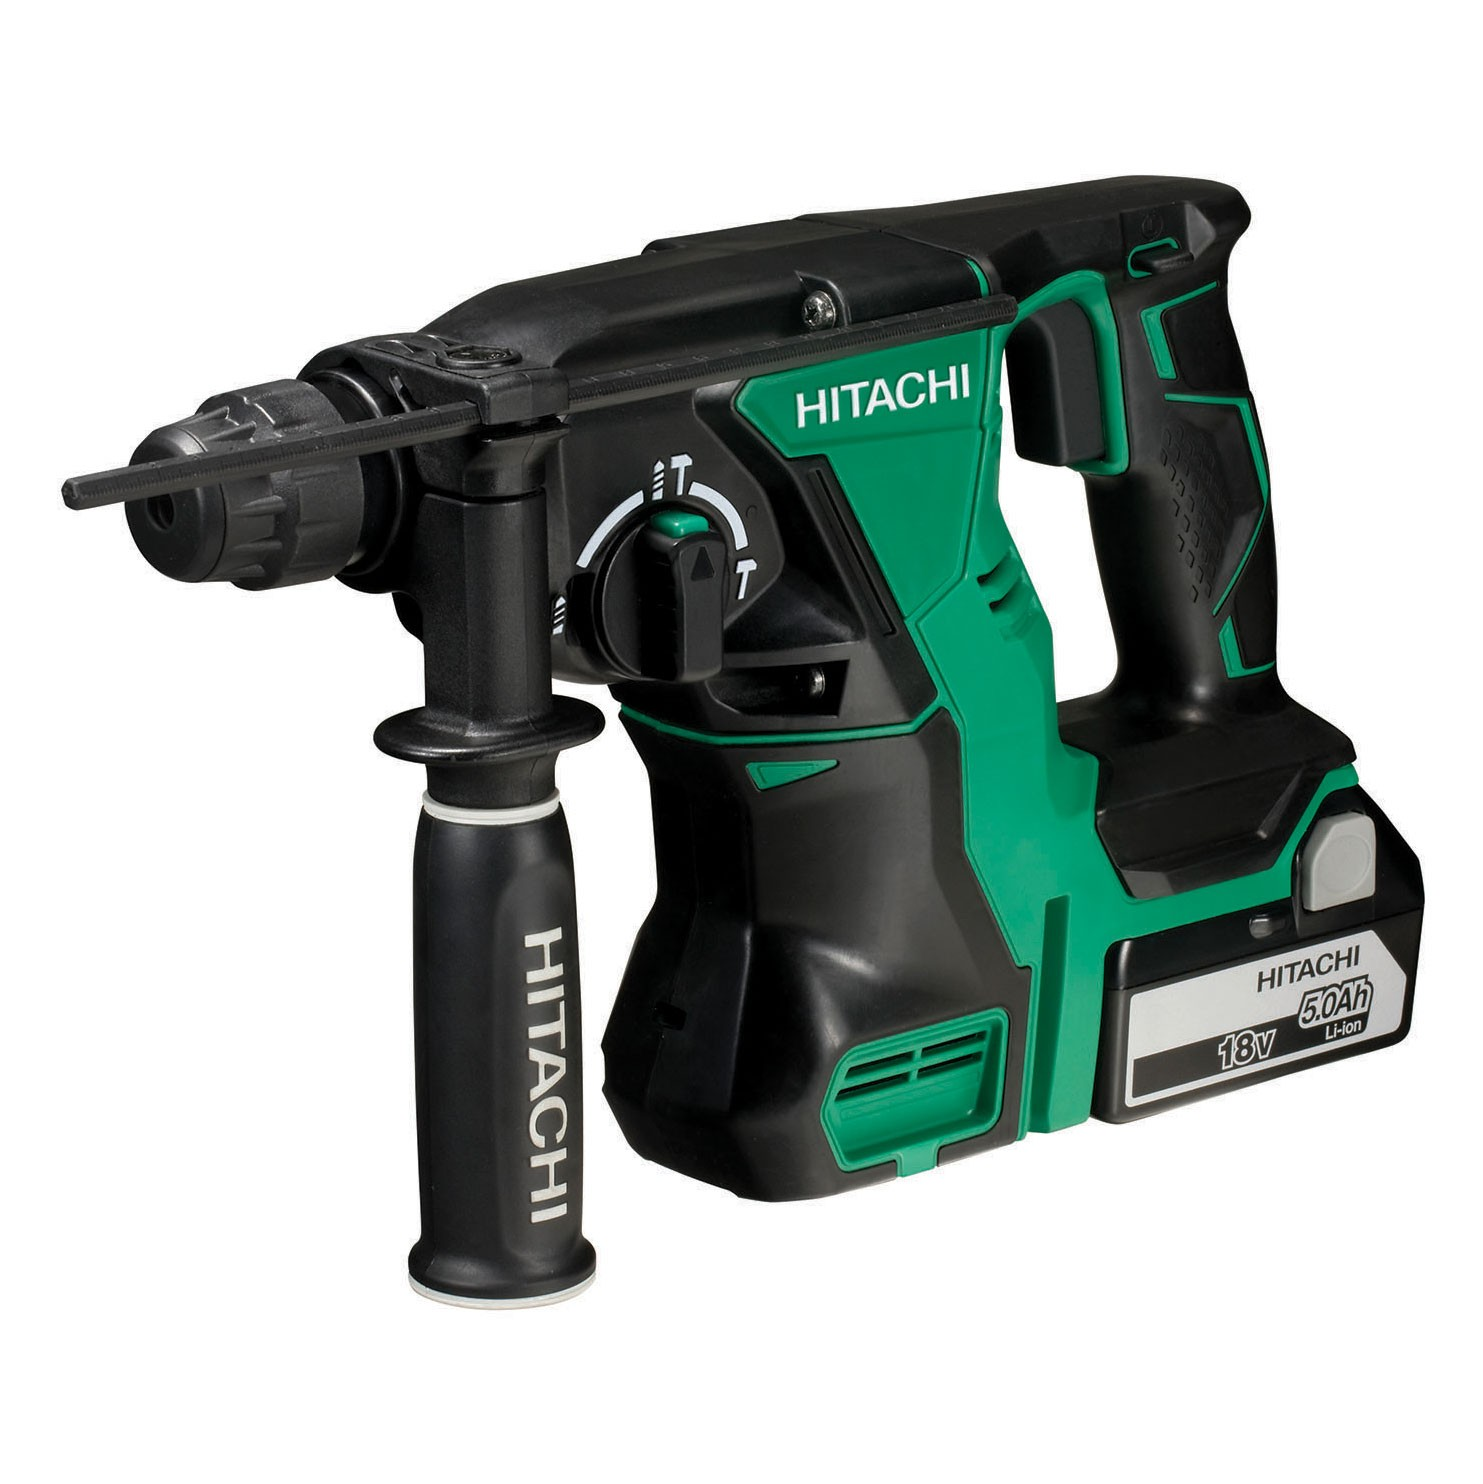 Hitachi DH18DBL/JP 18v Brushless Cordless SDS+ Plus Hammer Drill inc 2x 5.0Ah Batts